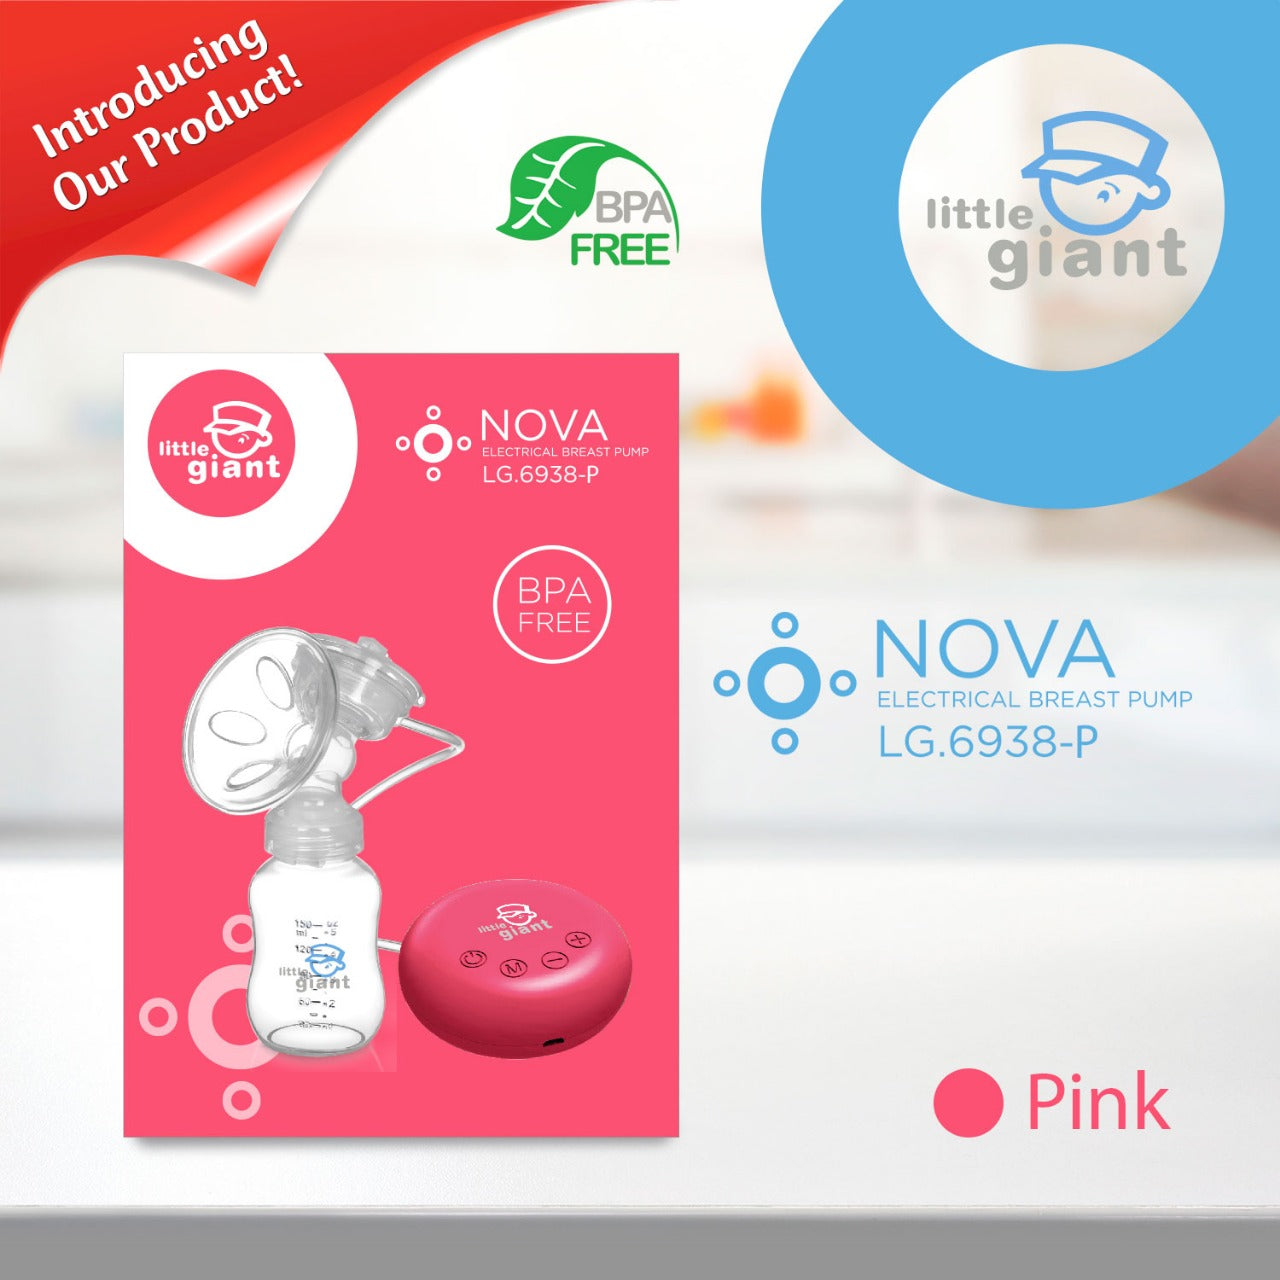 Little Giant Electrical Breastpump NOVA LG6938 - Pink